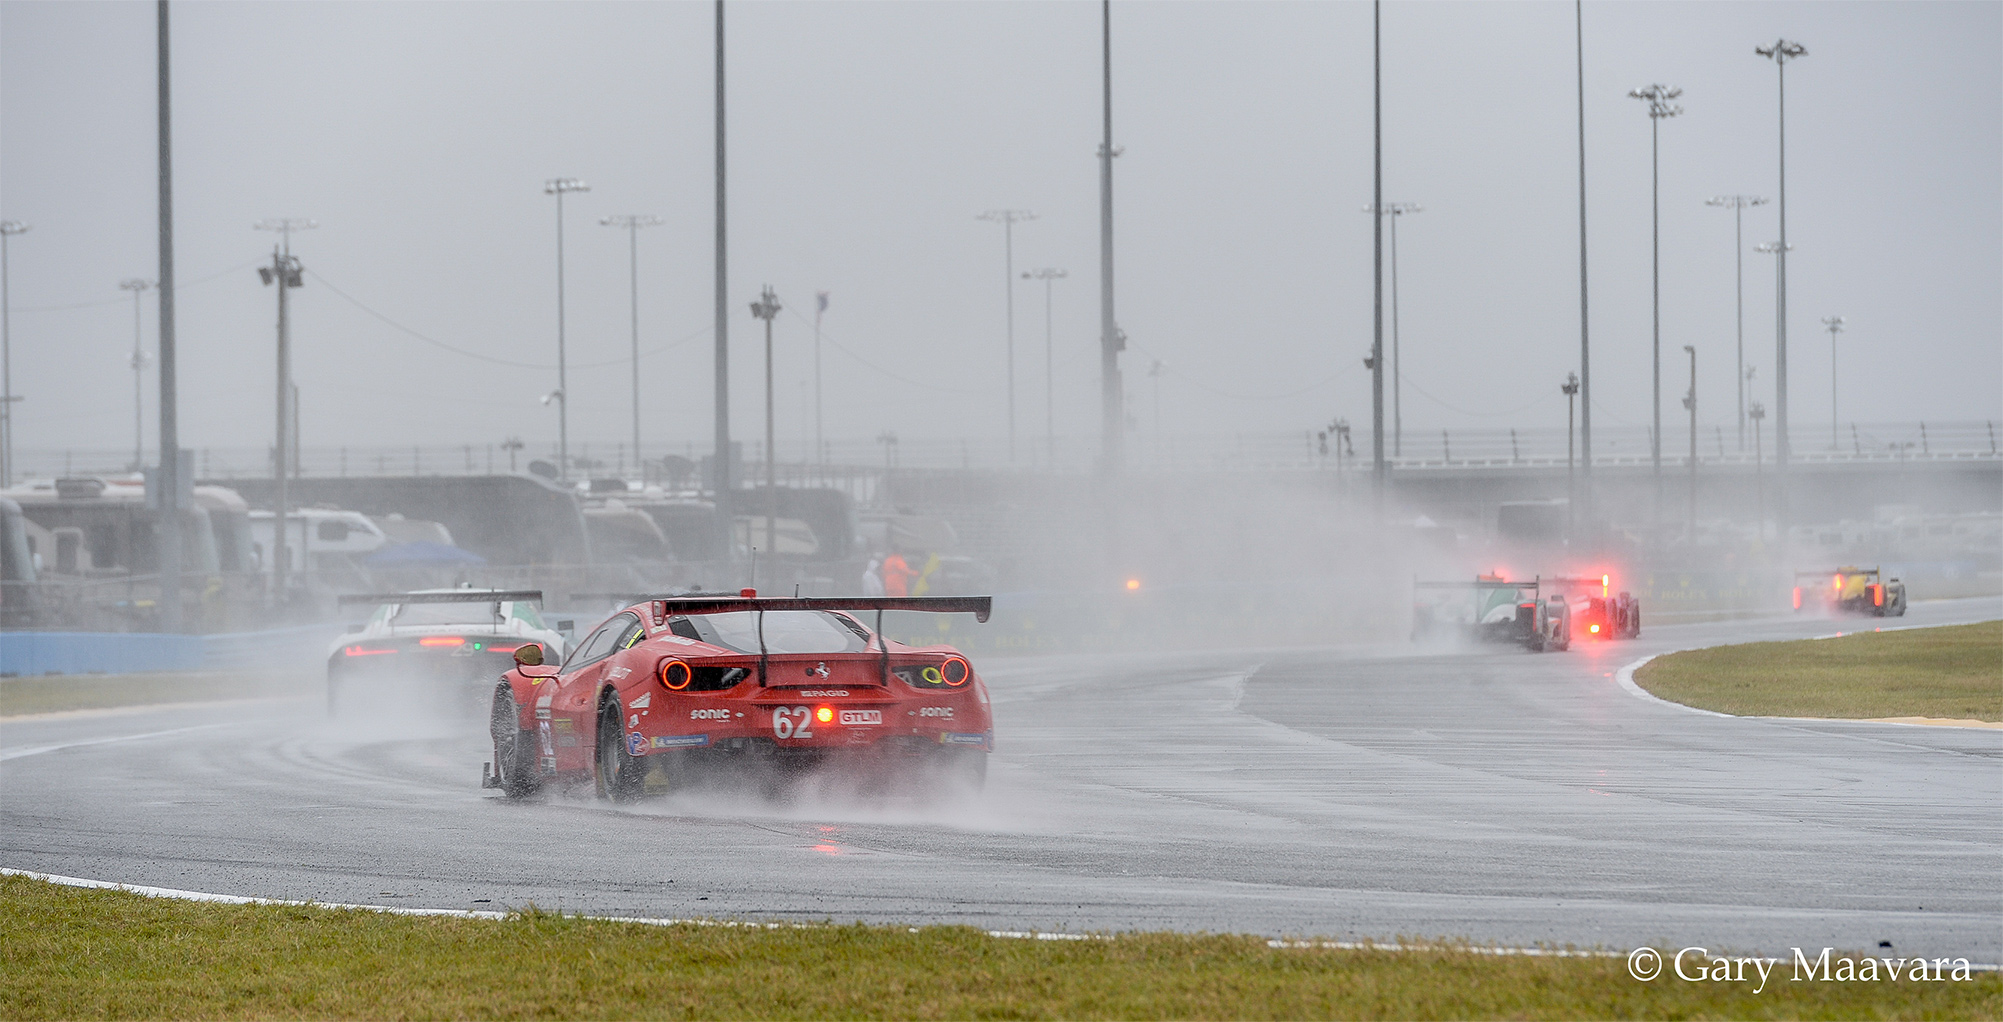 TrackWorthy - Rolex 24_race_hour 20_#62_Risi Competione_Ferrari 488 GTE